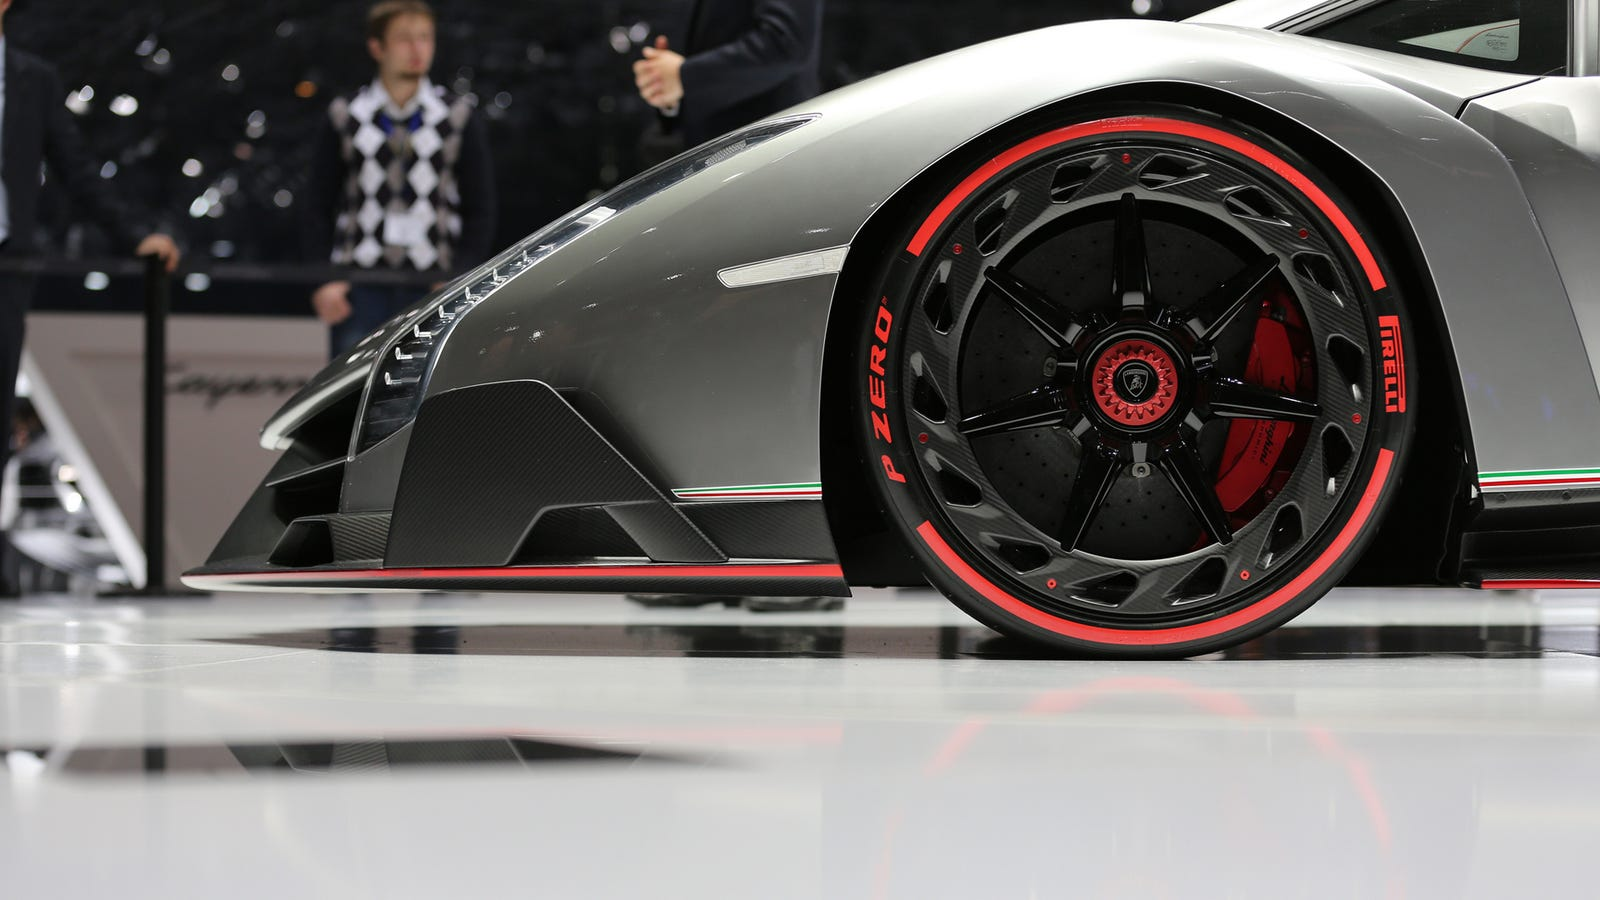 Your Ridiculously Extreme Lamborghini Veneno Wallpaper Is Here